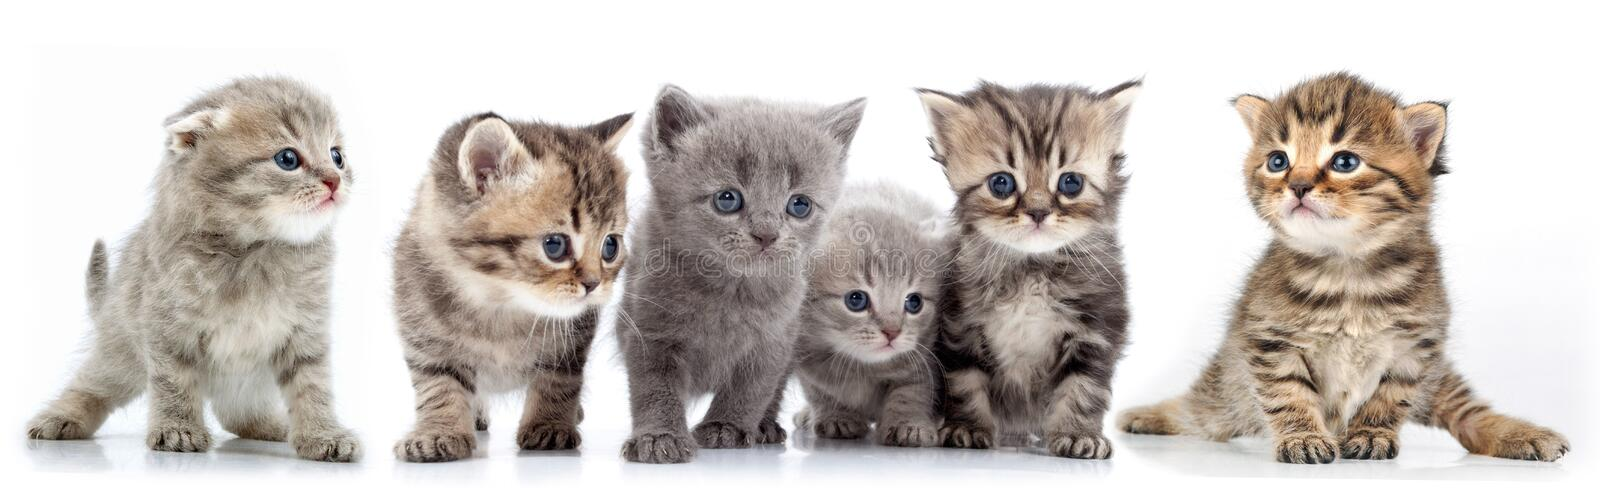 Large group of kittens against white background royalty free stock photo